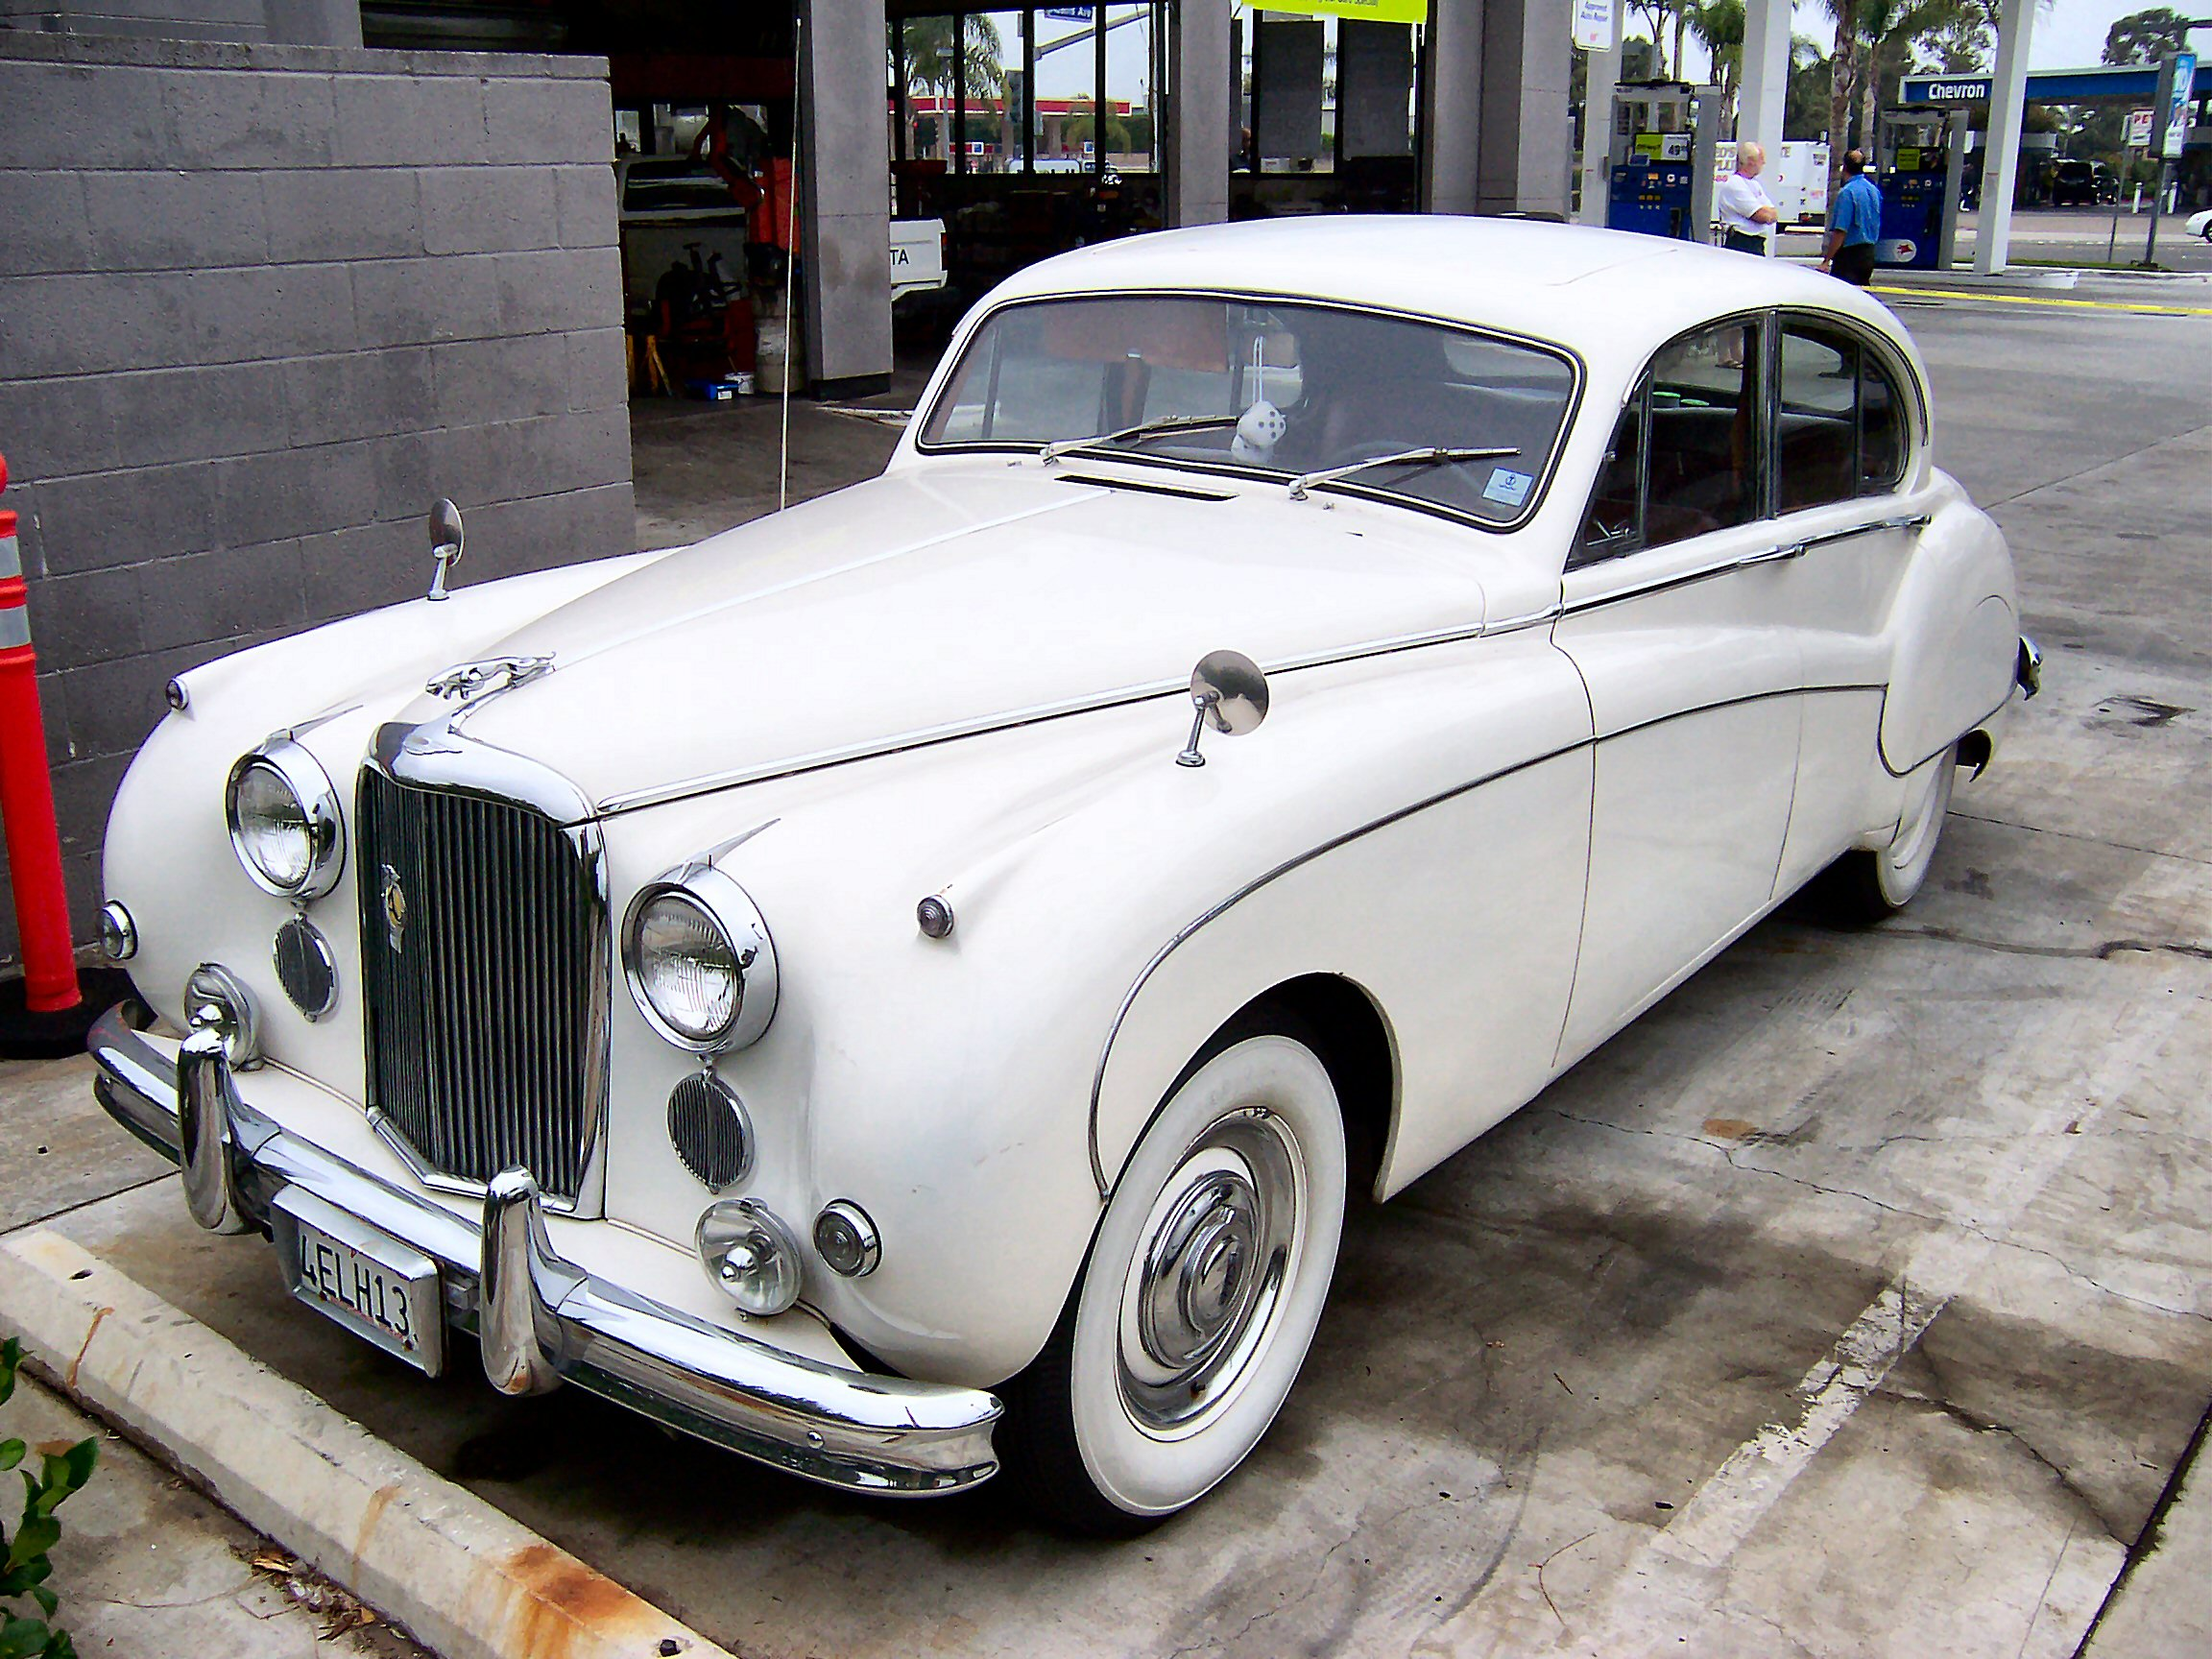 Jaguar Mark 2 I 1959 - 1967 Sedan #1